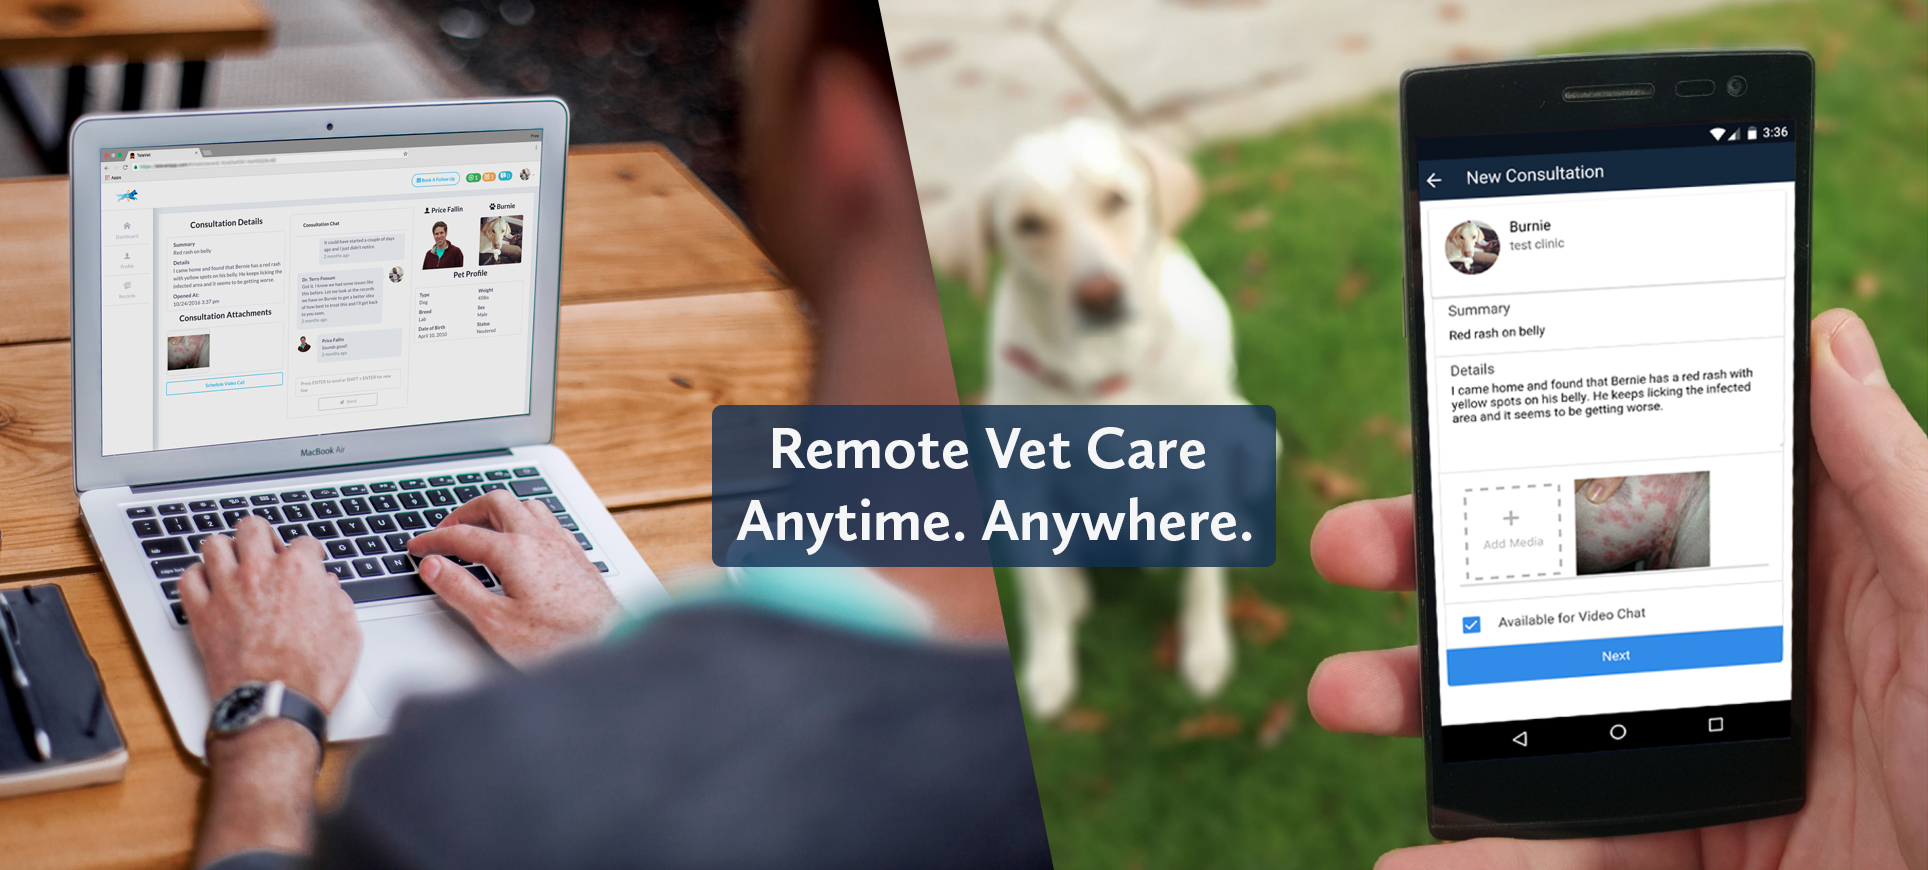 Remote Vet Care